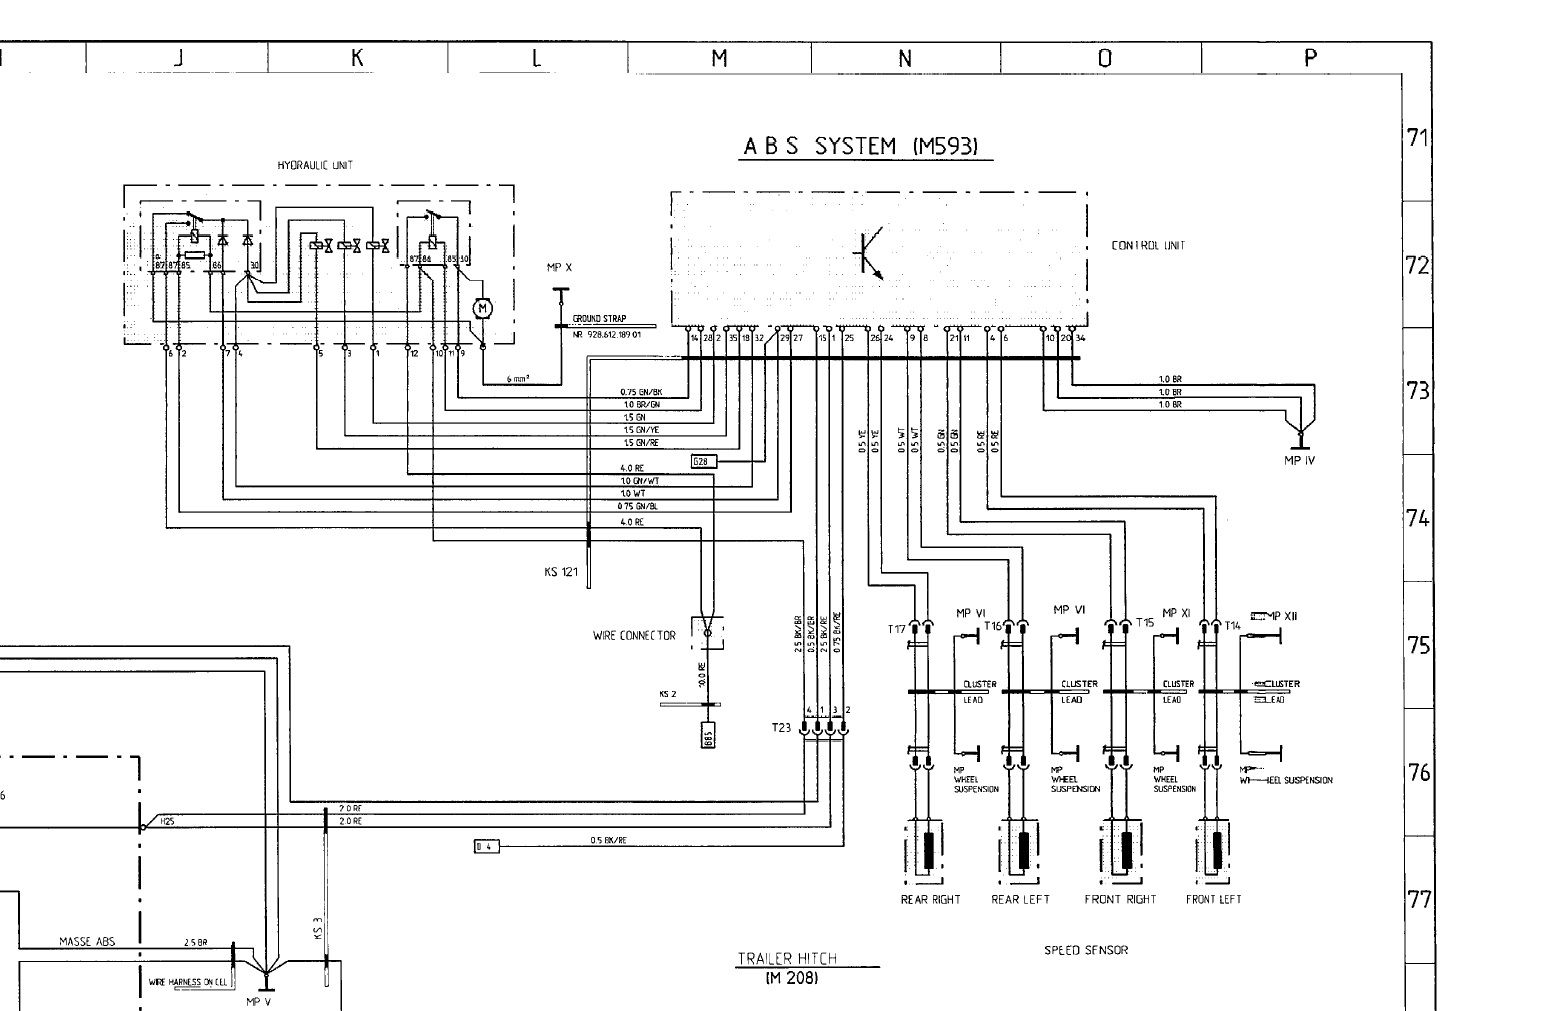 05 Porsche Cayenne Fuse Box Wiring Library 2008 2010 Diagram Download Diagrams U2022 V8 Engine